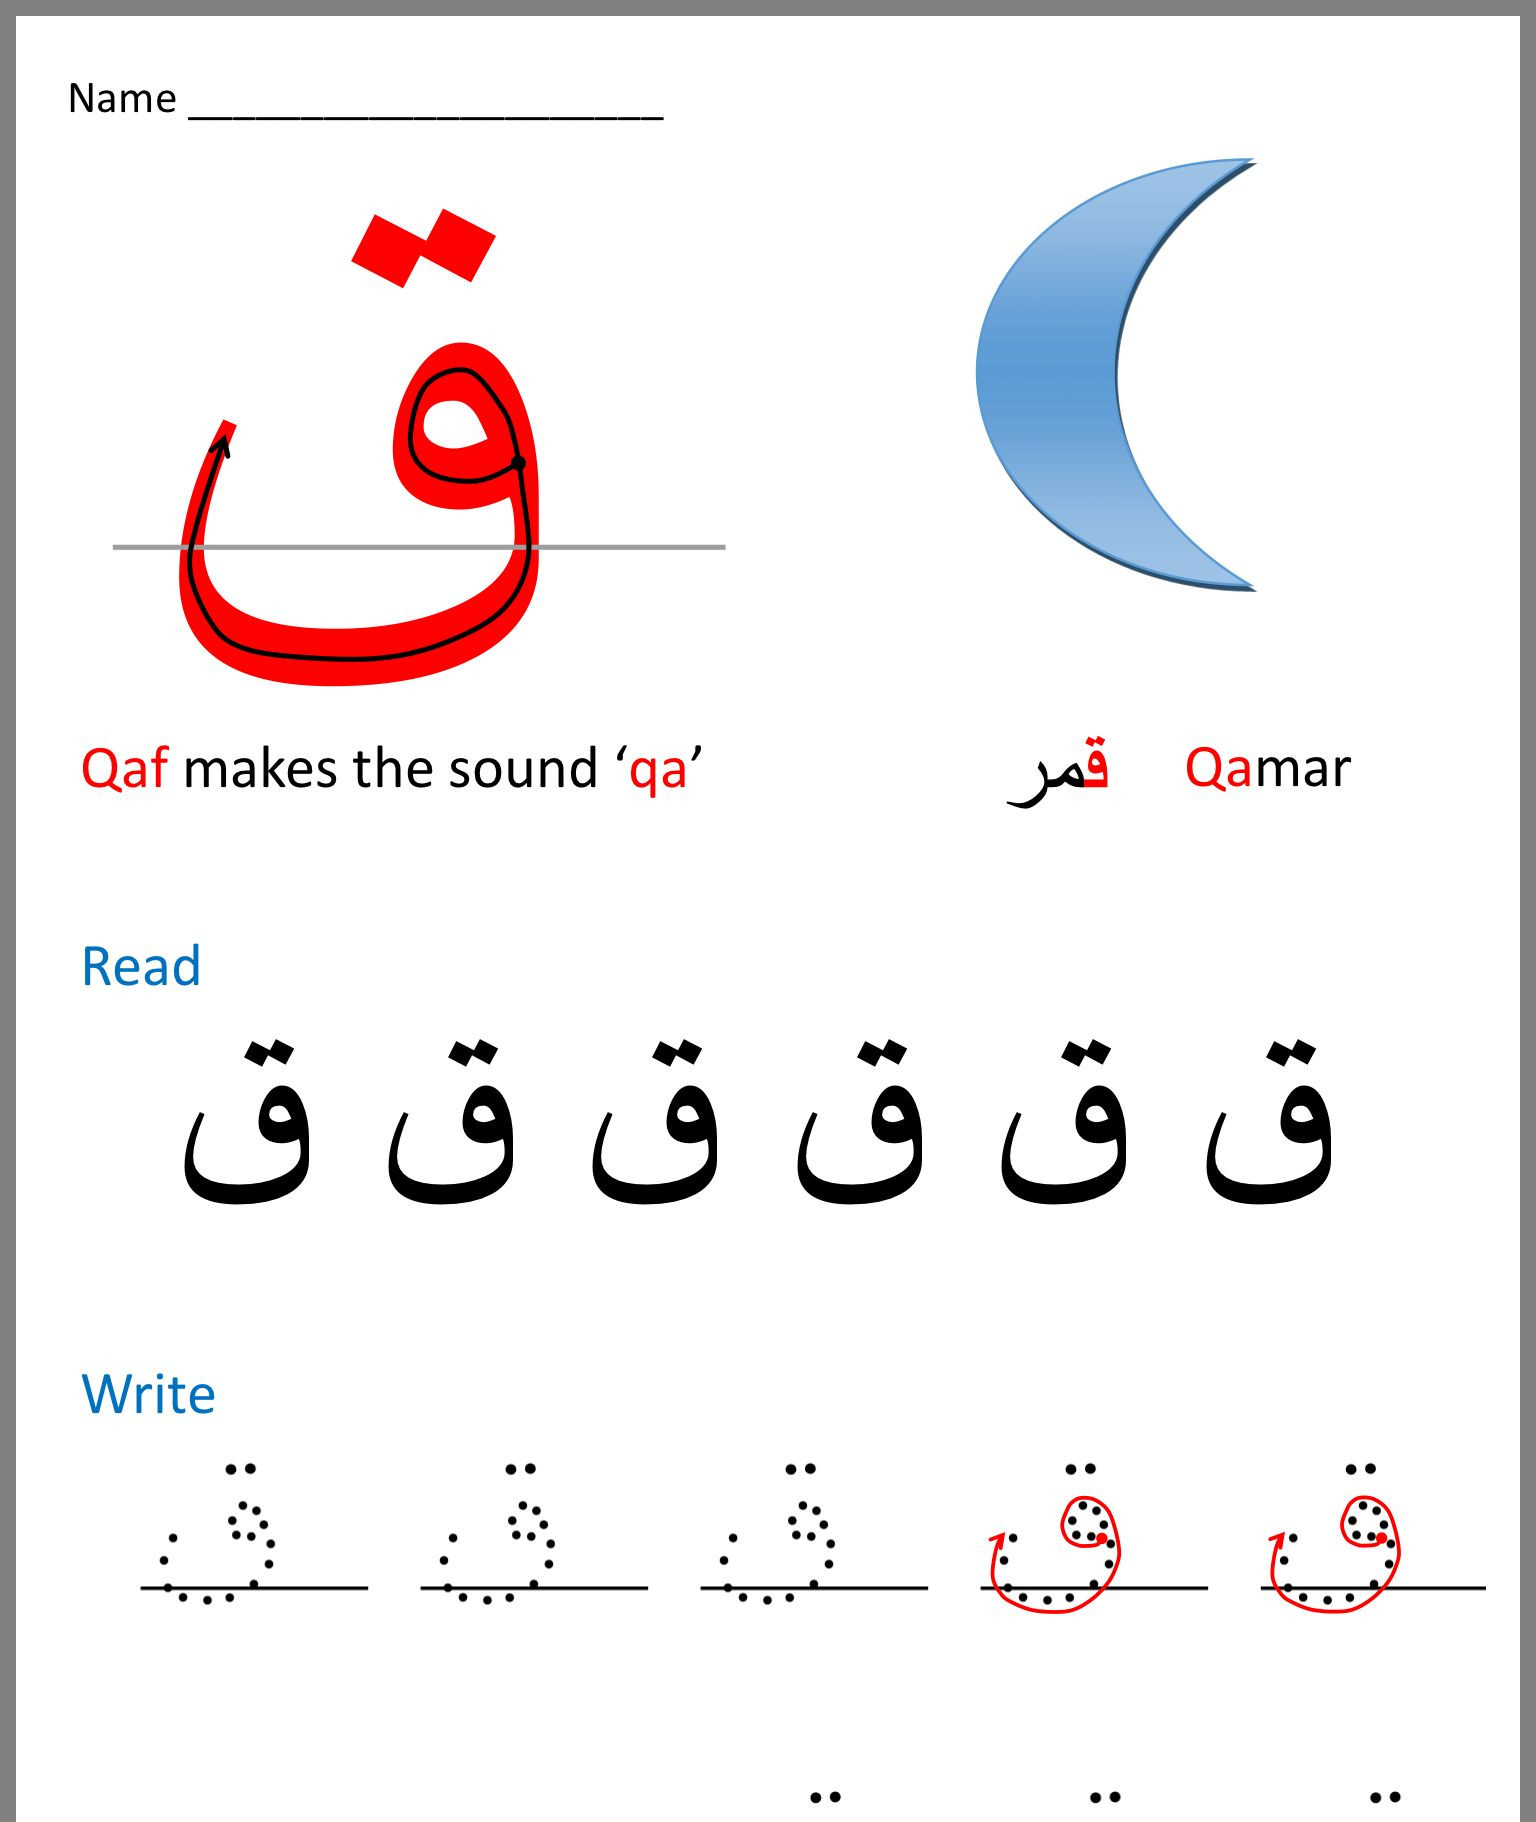 Arabic Alphabet Worksheets Printable Arabic Alphabet Tracing for Kids Worksheets